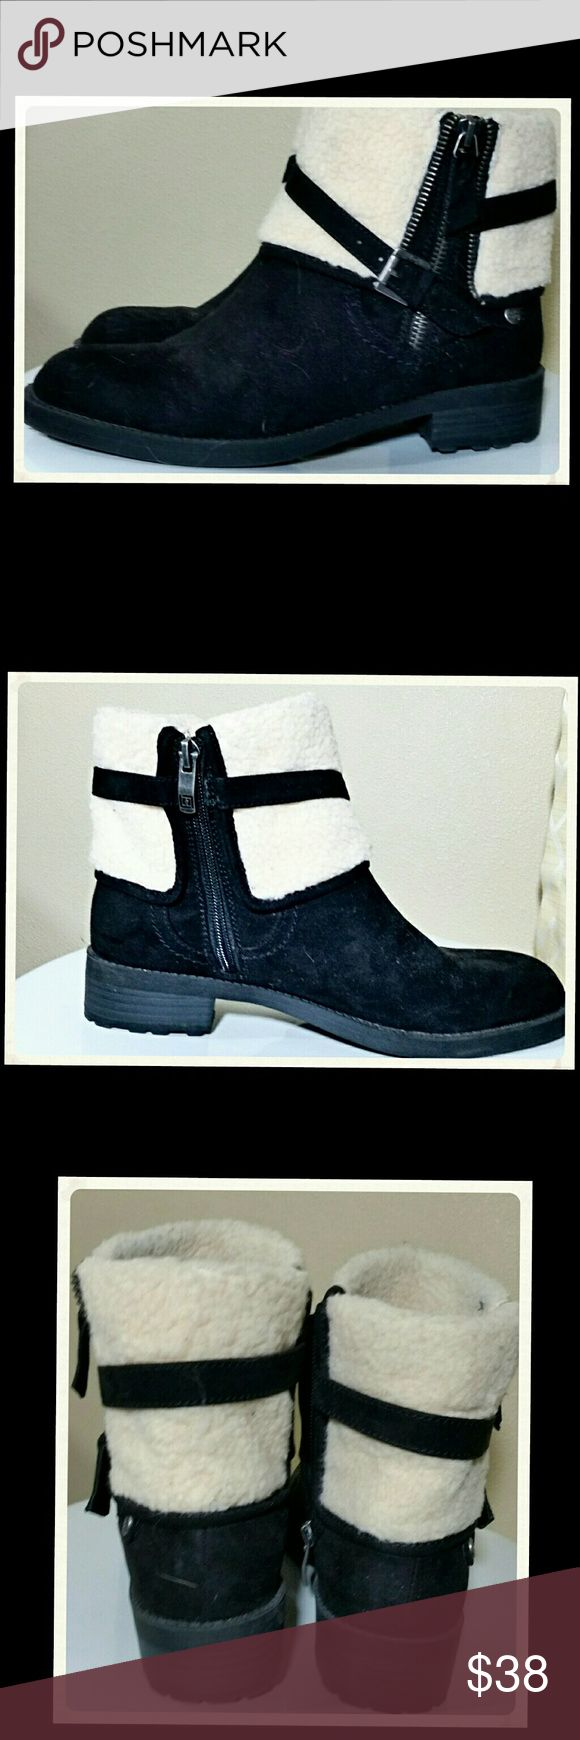 Liz Claiborne faux fur ankle boots....size 7.5 Black and cream. Zipper down the side for easy access. Nice condition Liz Claiborne Shoes Ankle Boots & Booties